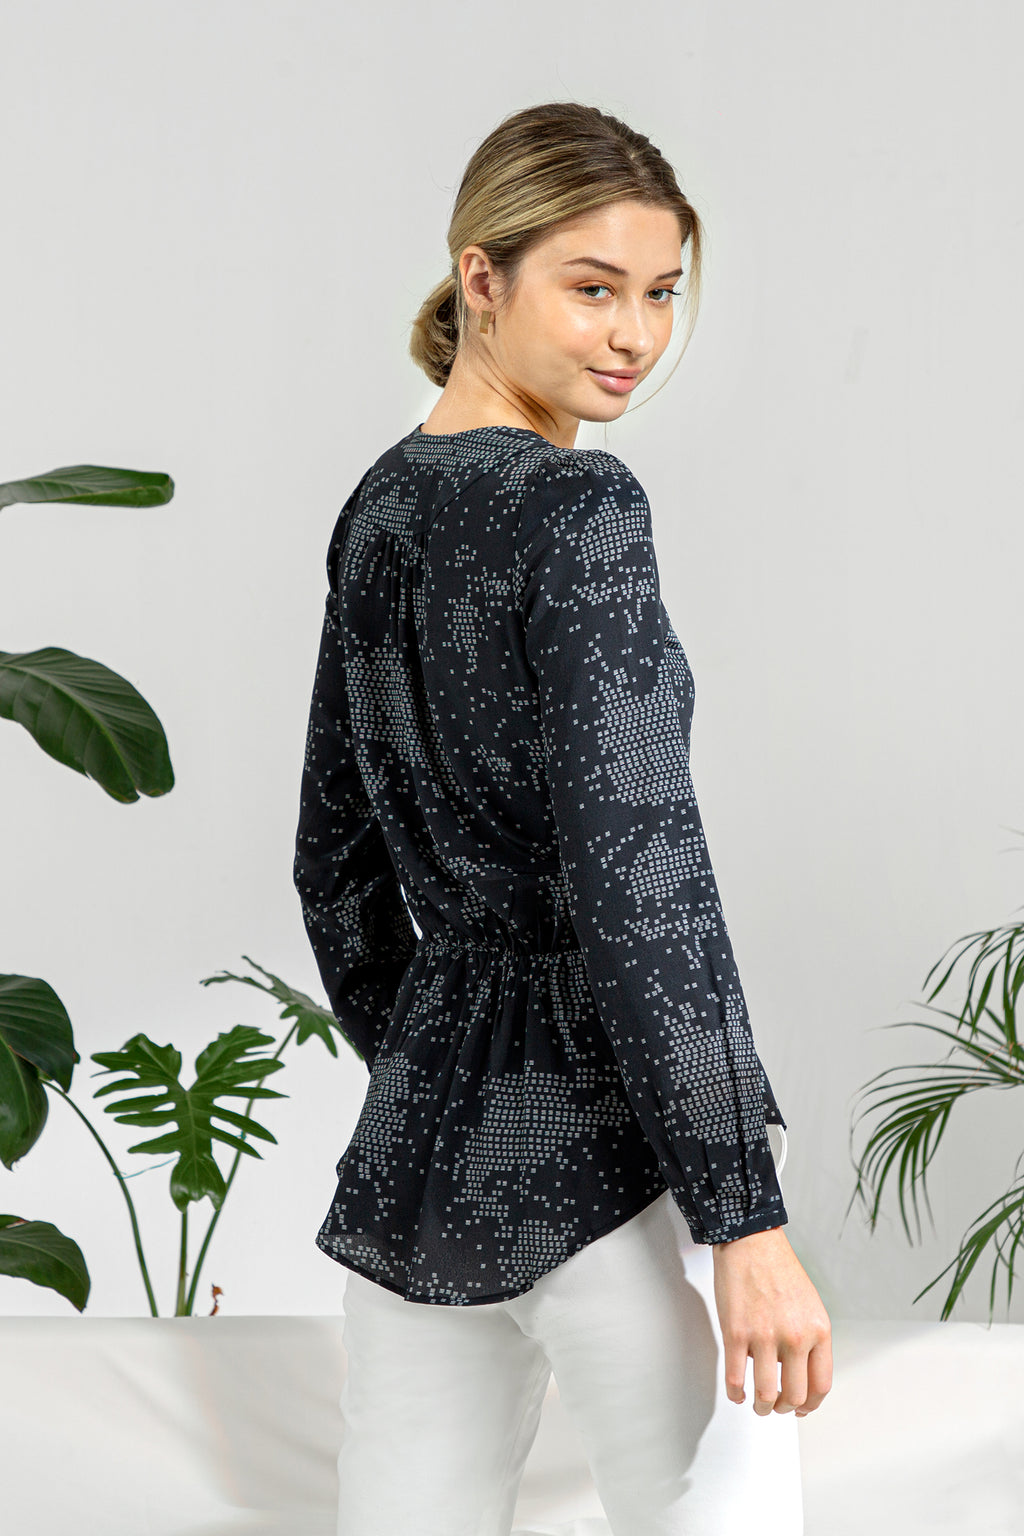 Pintuck Blouse - Black Print